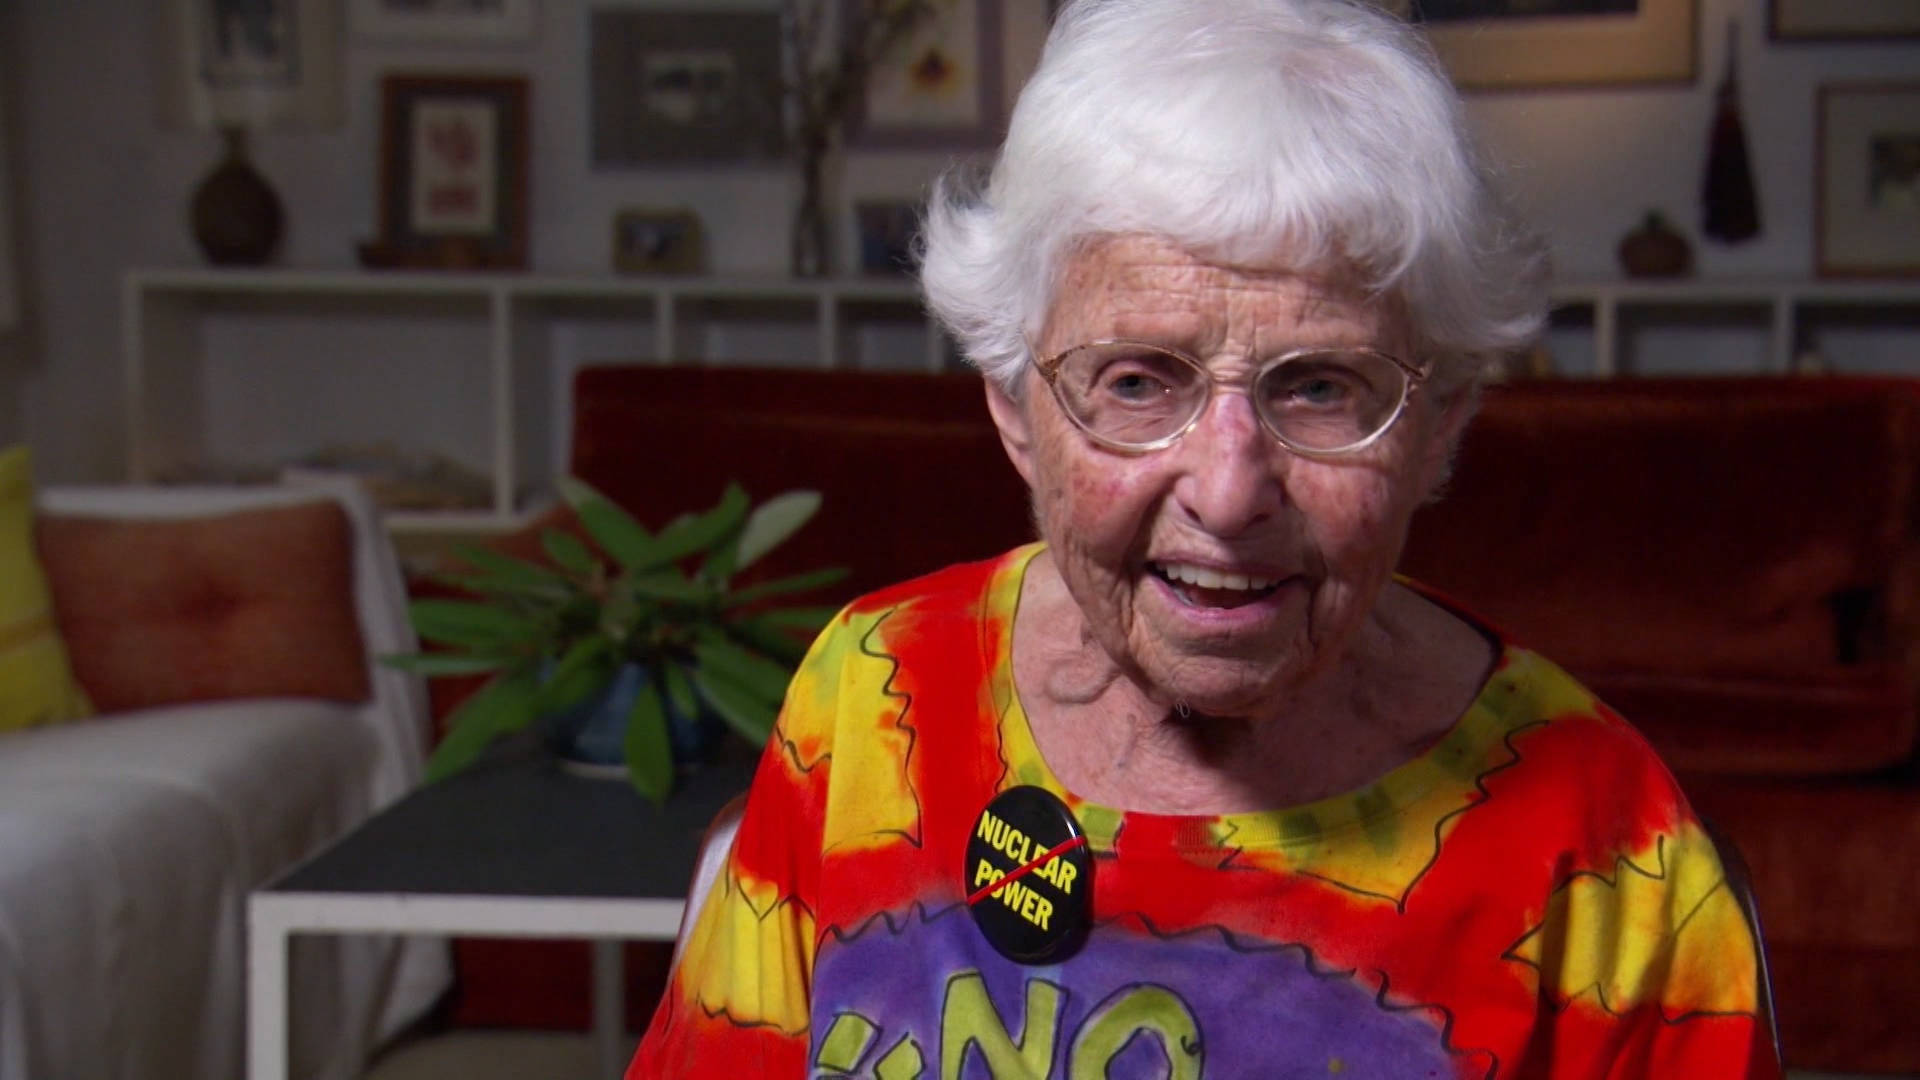 Remembering Legendary Peace Activist Frances Crowe, Who Died at 100 After Decades of Resisting War